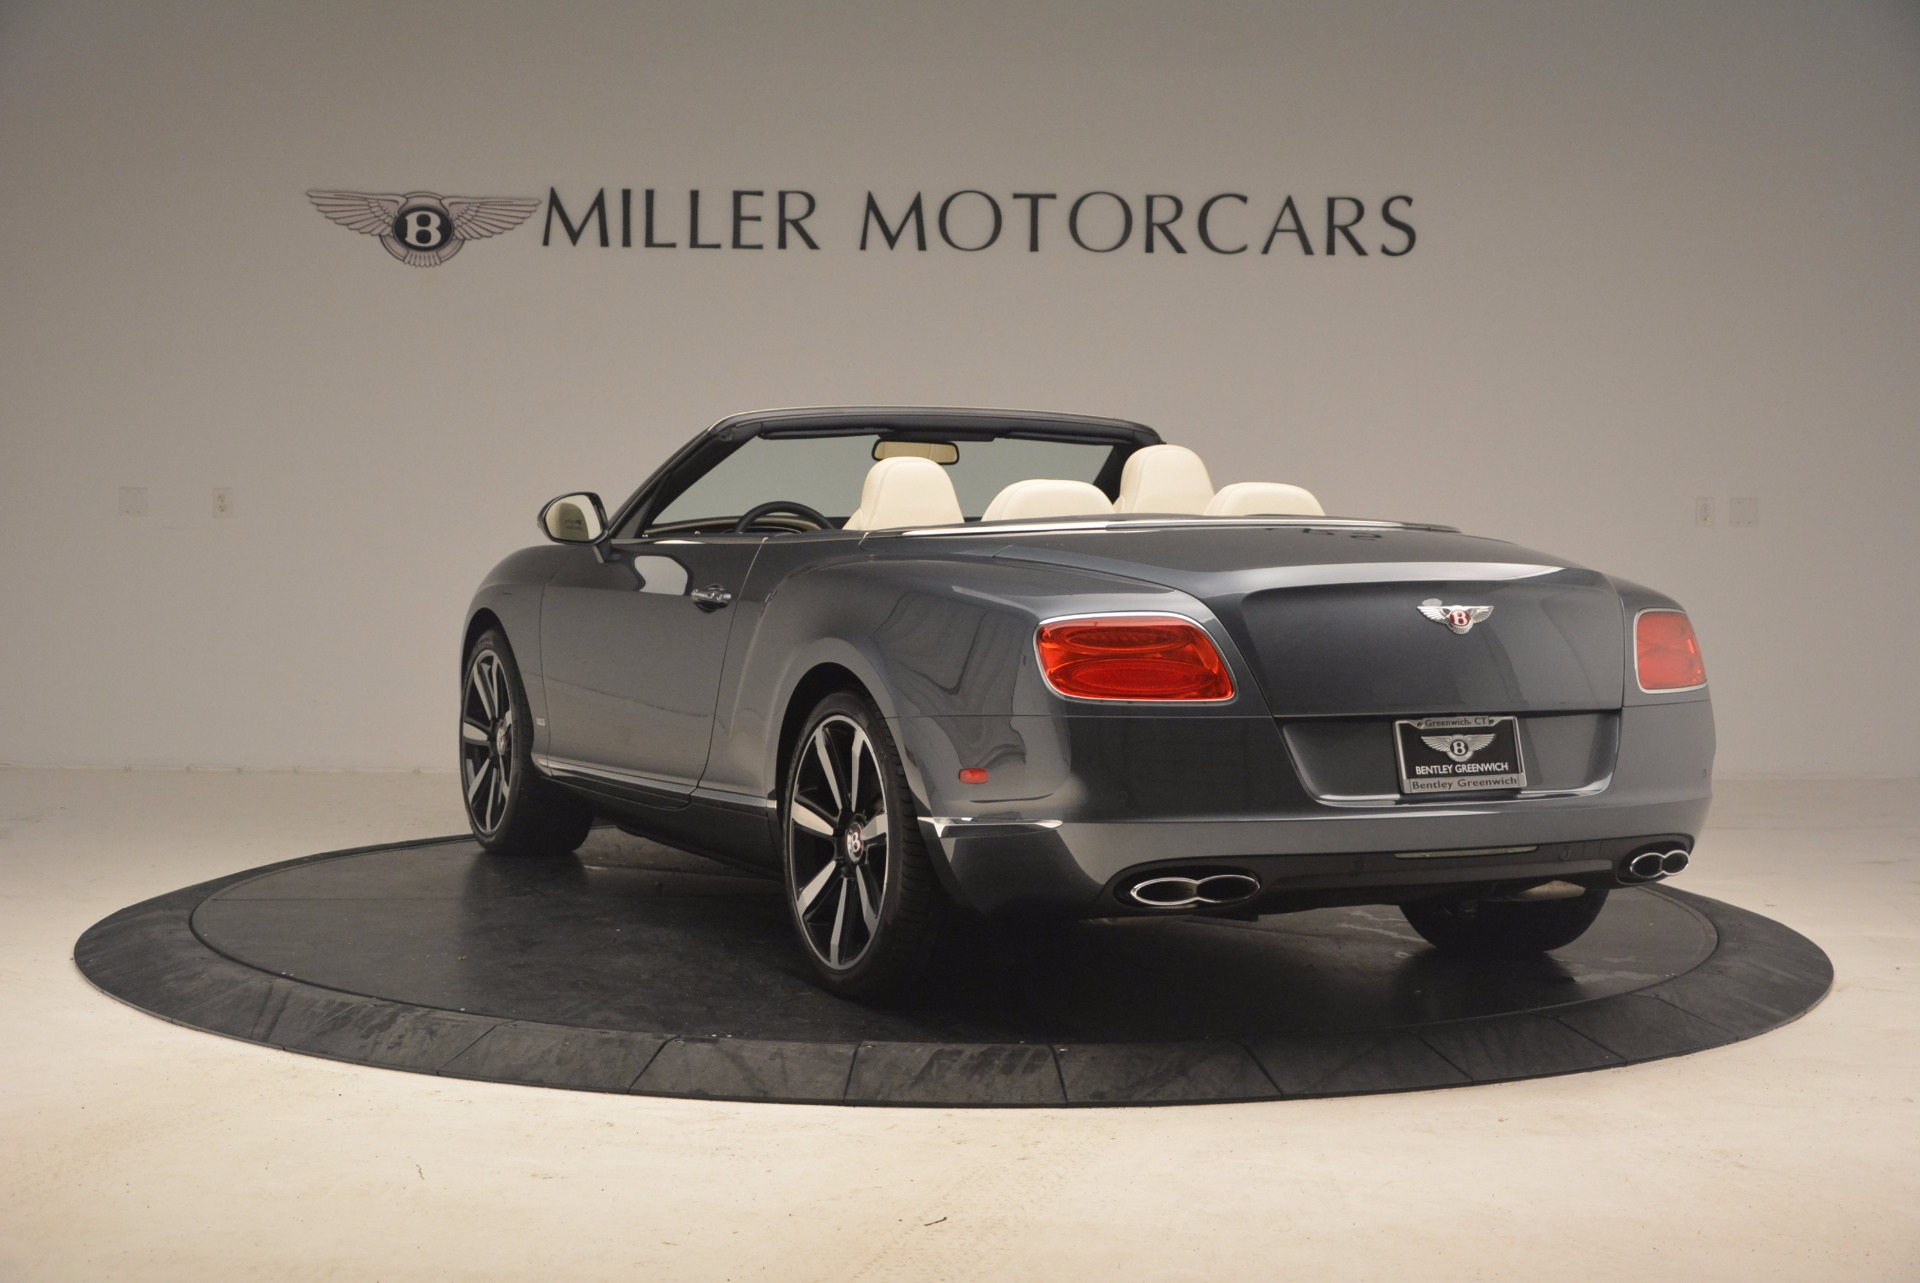 Used 2013 Bentley Continental GT V8 Le Mans Edition, 1 of 48 For Sale In Greenwich, CT 1288_p5